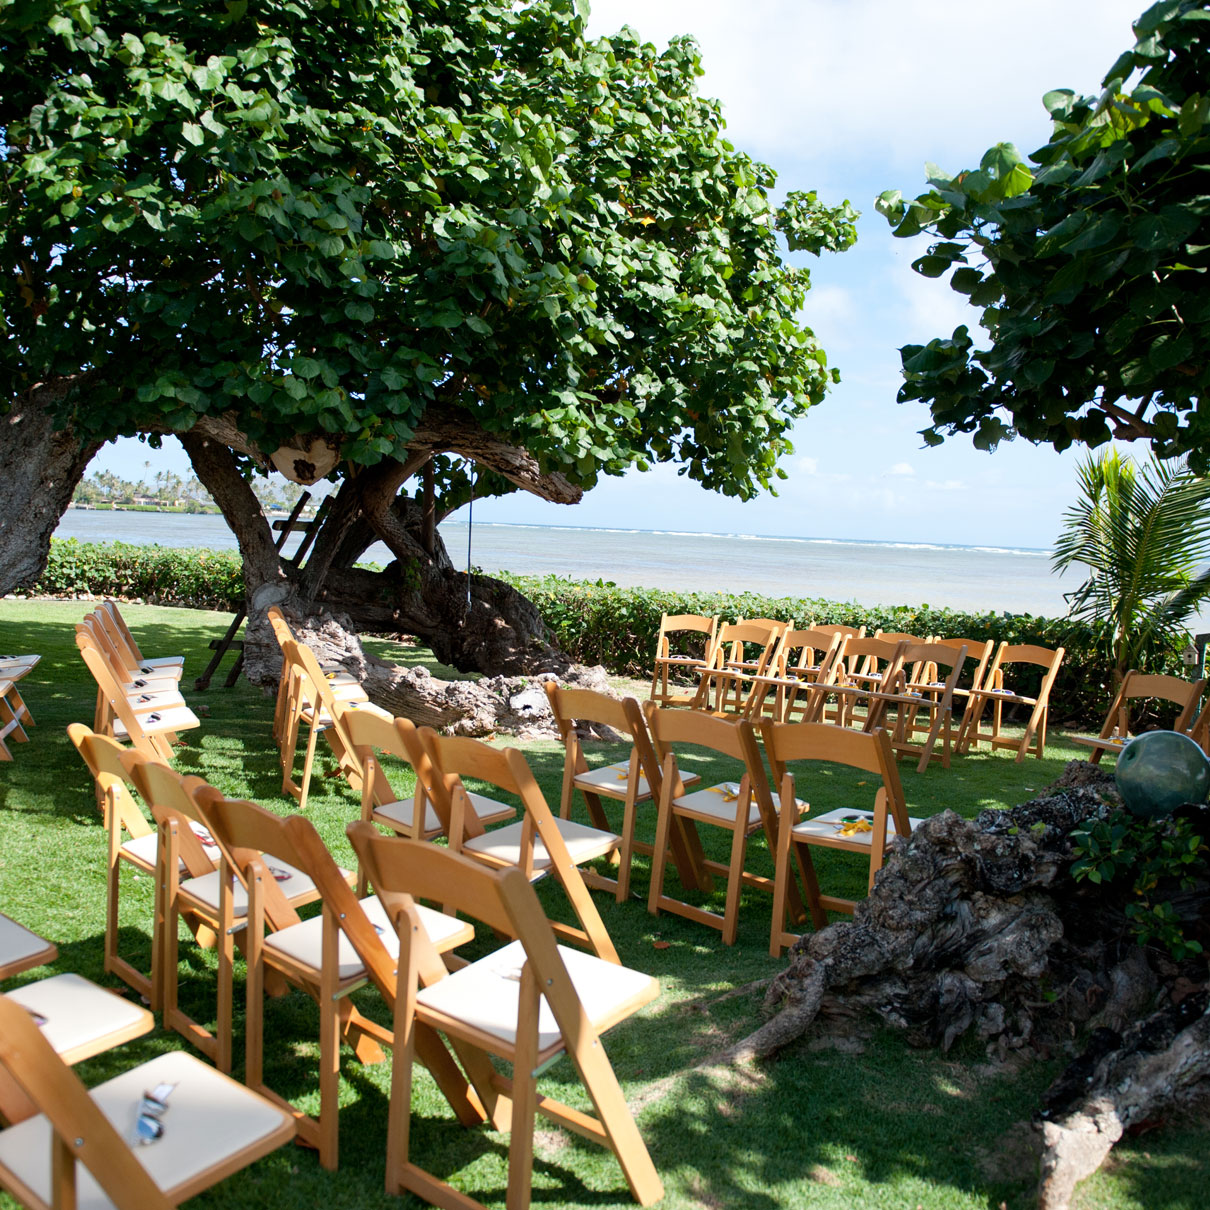 How To Have A Beautiful Wedding With A Small Wedding Budget